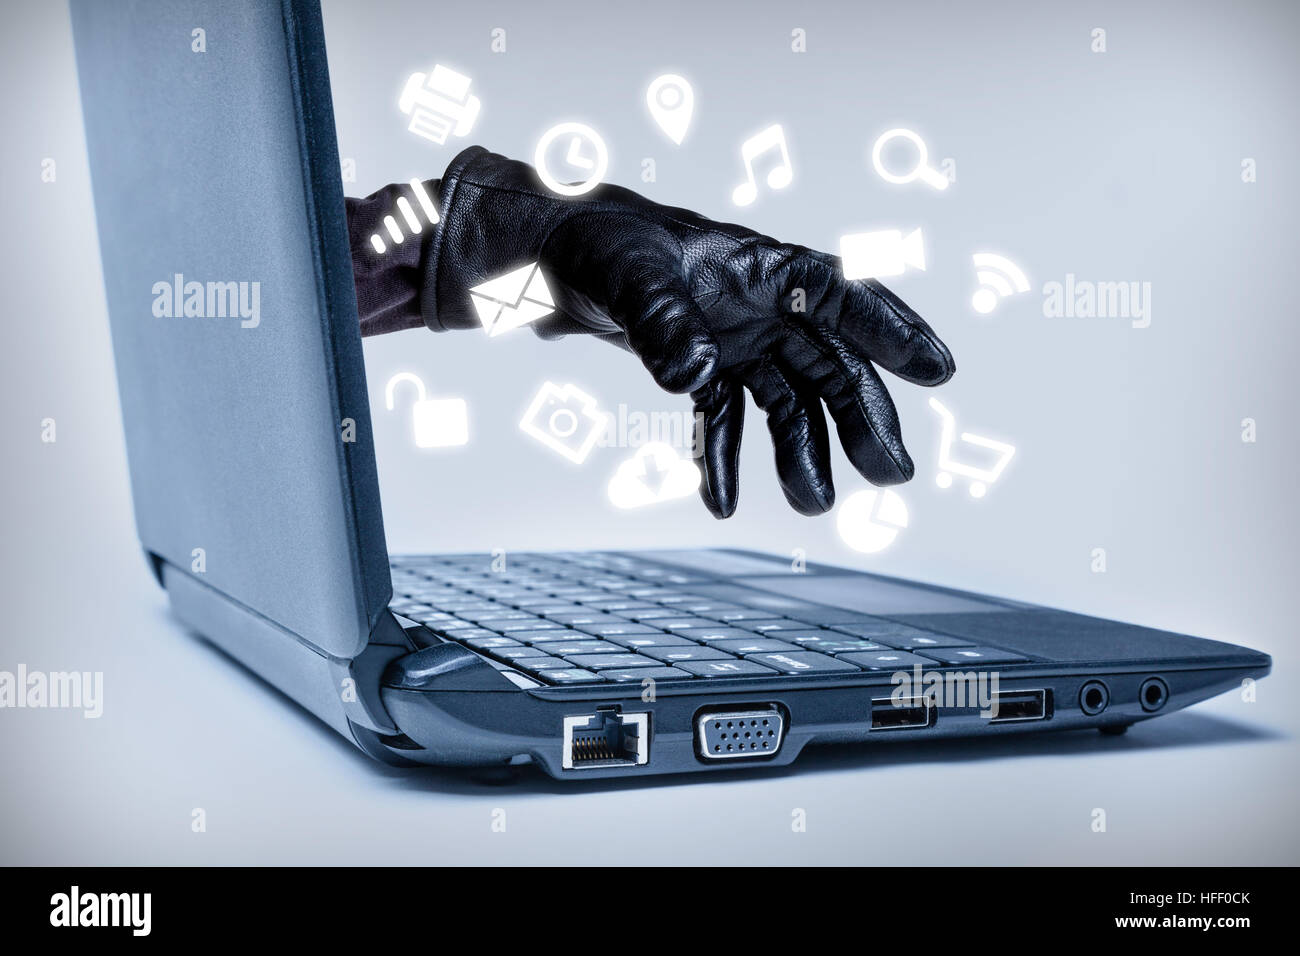 A gloved hand reaching out through a laptop with common media icons flowing, signifying a cybercrime or Internet - Stock Image